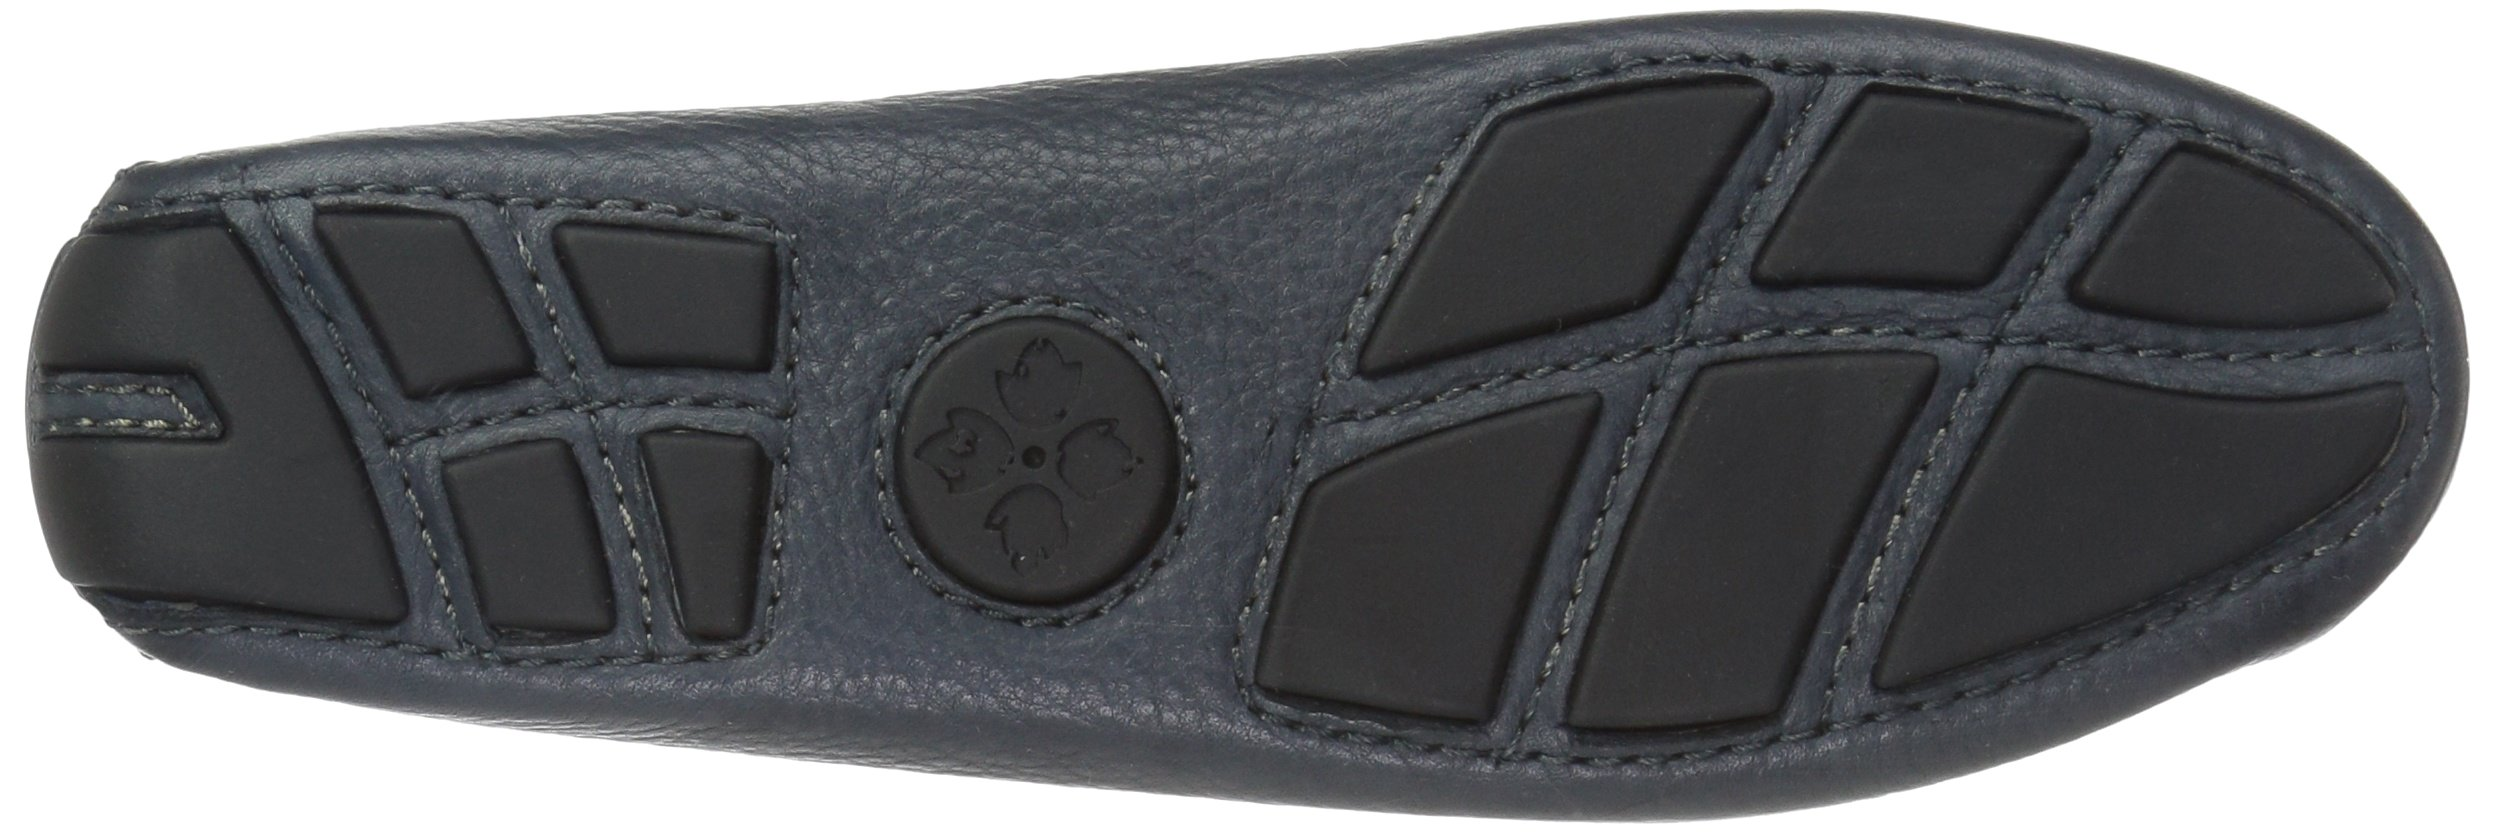 Patricia Nash Women's Domenica Driving Style Loafer, Oxford Blue, 37.5 B US by Patricia Nash (Image #3)